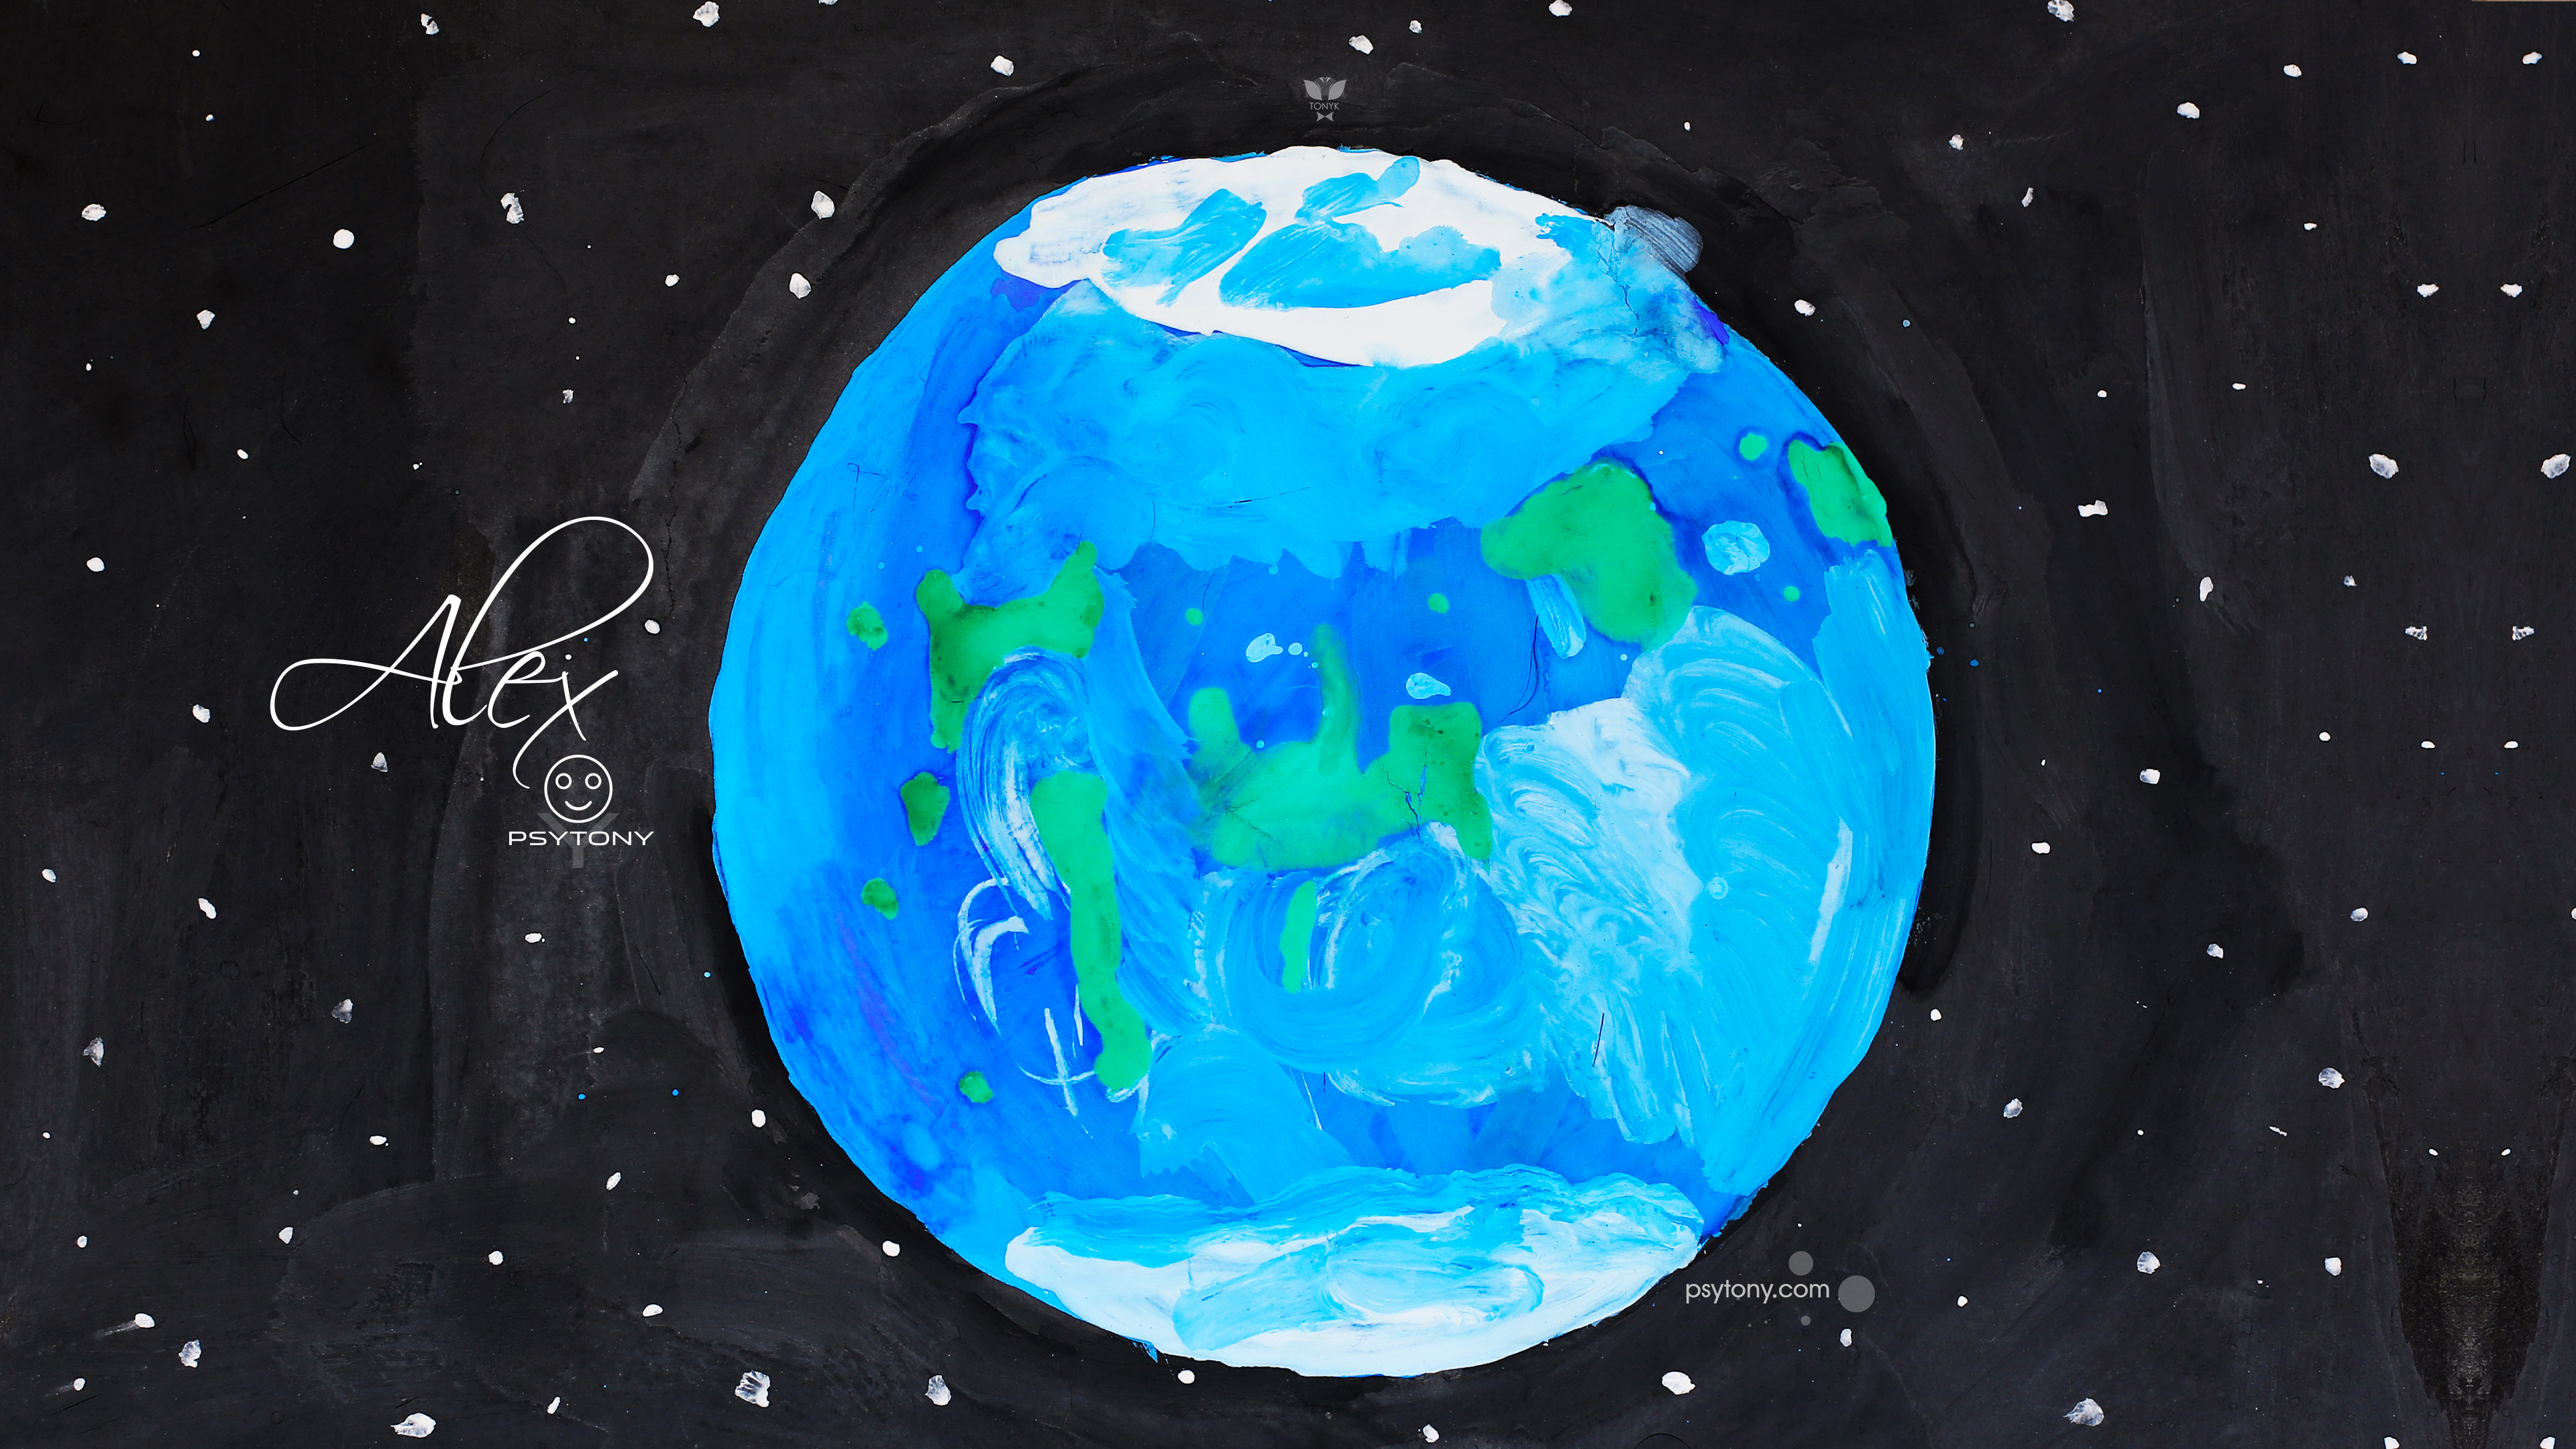 Alex-Soul-Boy-Planet-Earth-Life-World-Celebrity-Space-Stars-Gouache-Art-2019-Multicolors-4K-Wallpapers-by-Psychologist-Tony-Kokhan-www.psytony.com-image